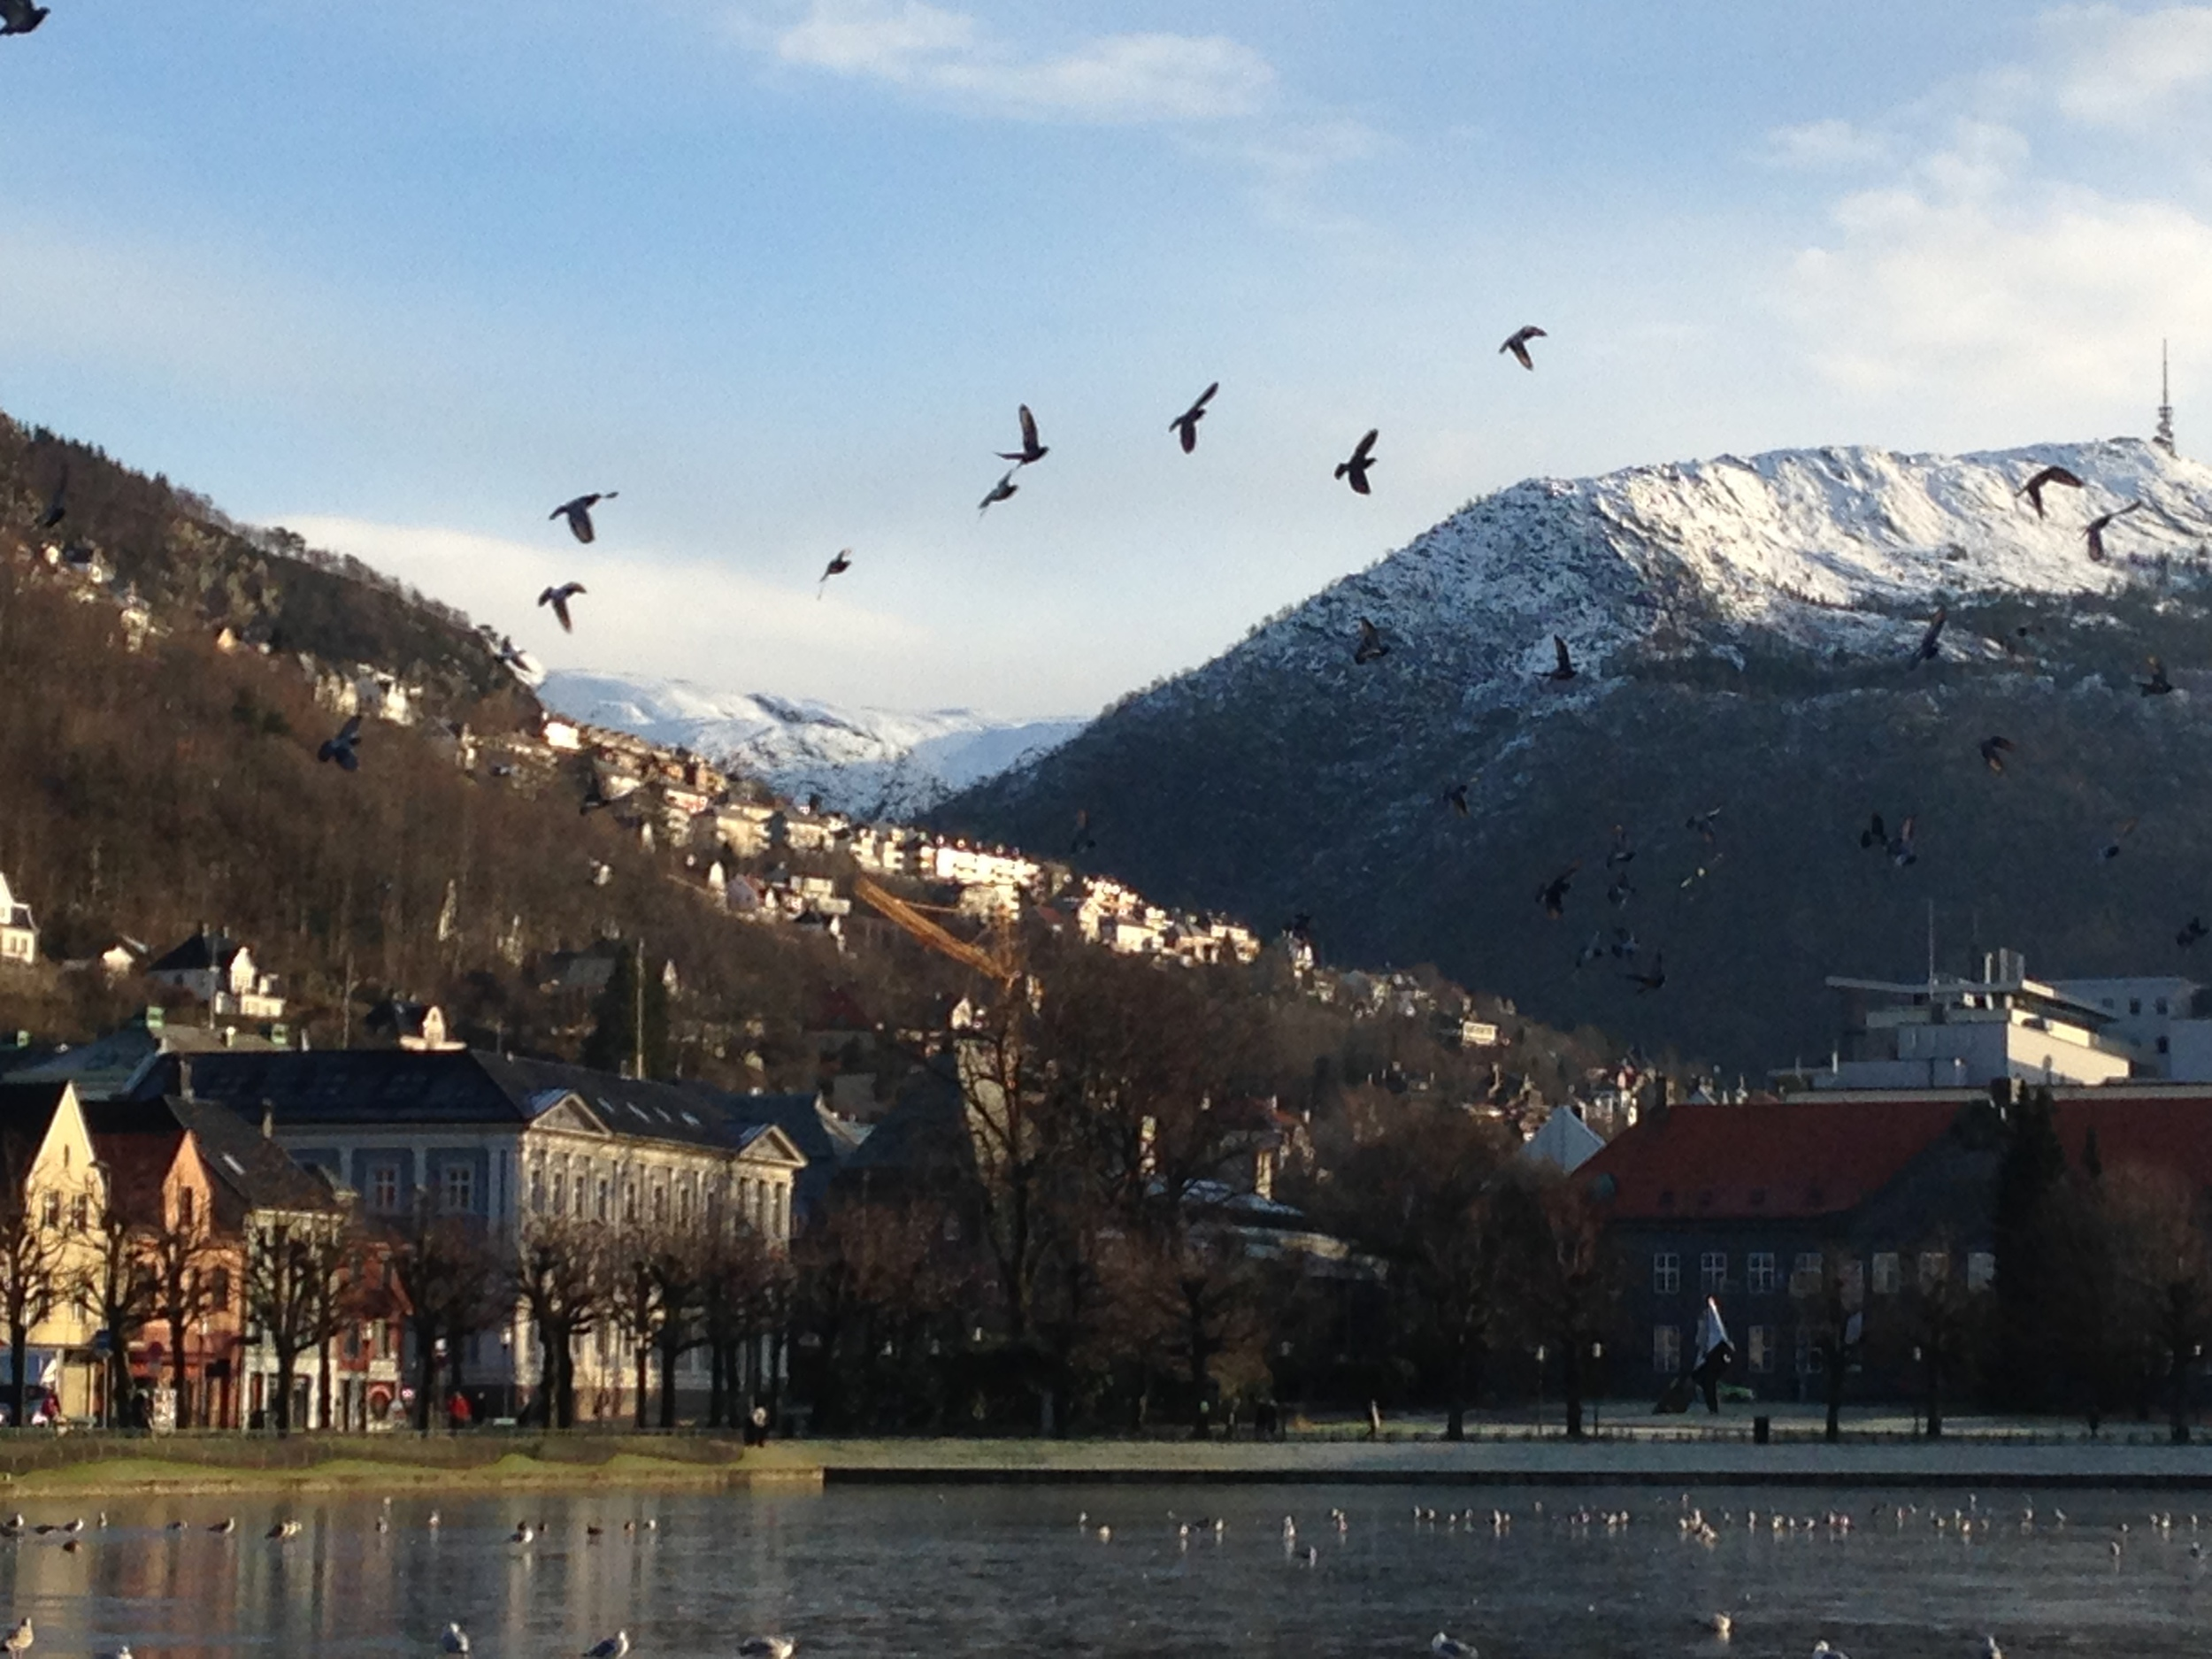 This is the view from downtown Bergen, Norway